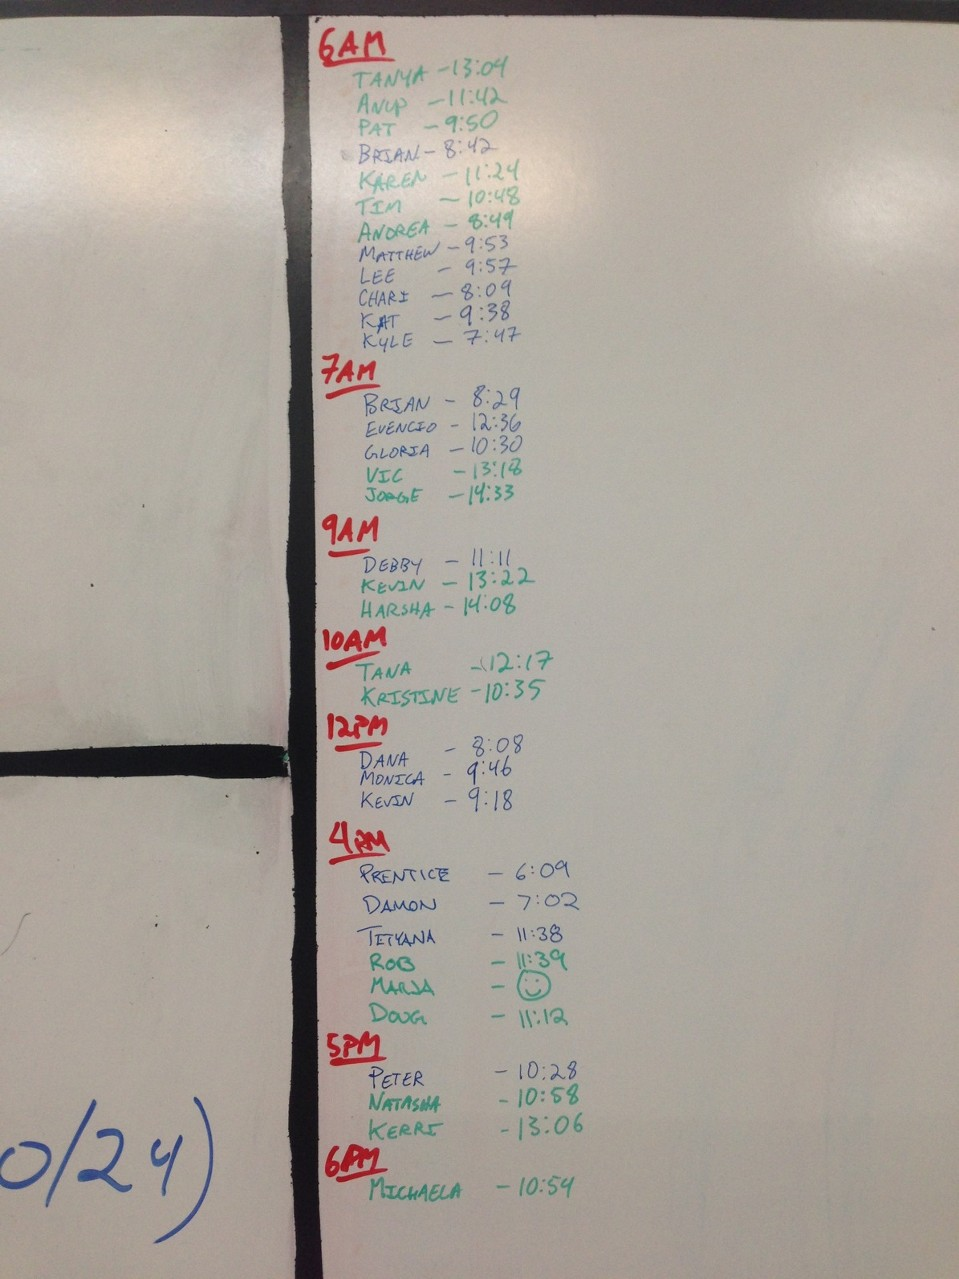 Sept 4 WOD Results